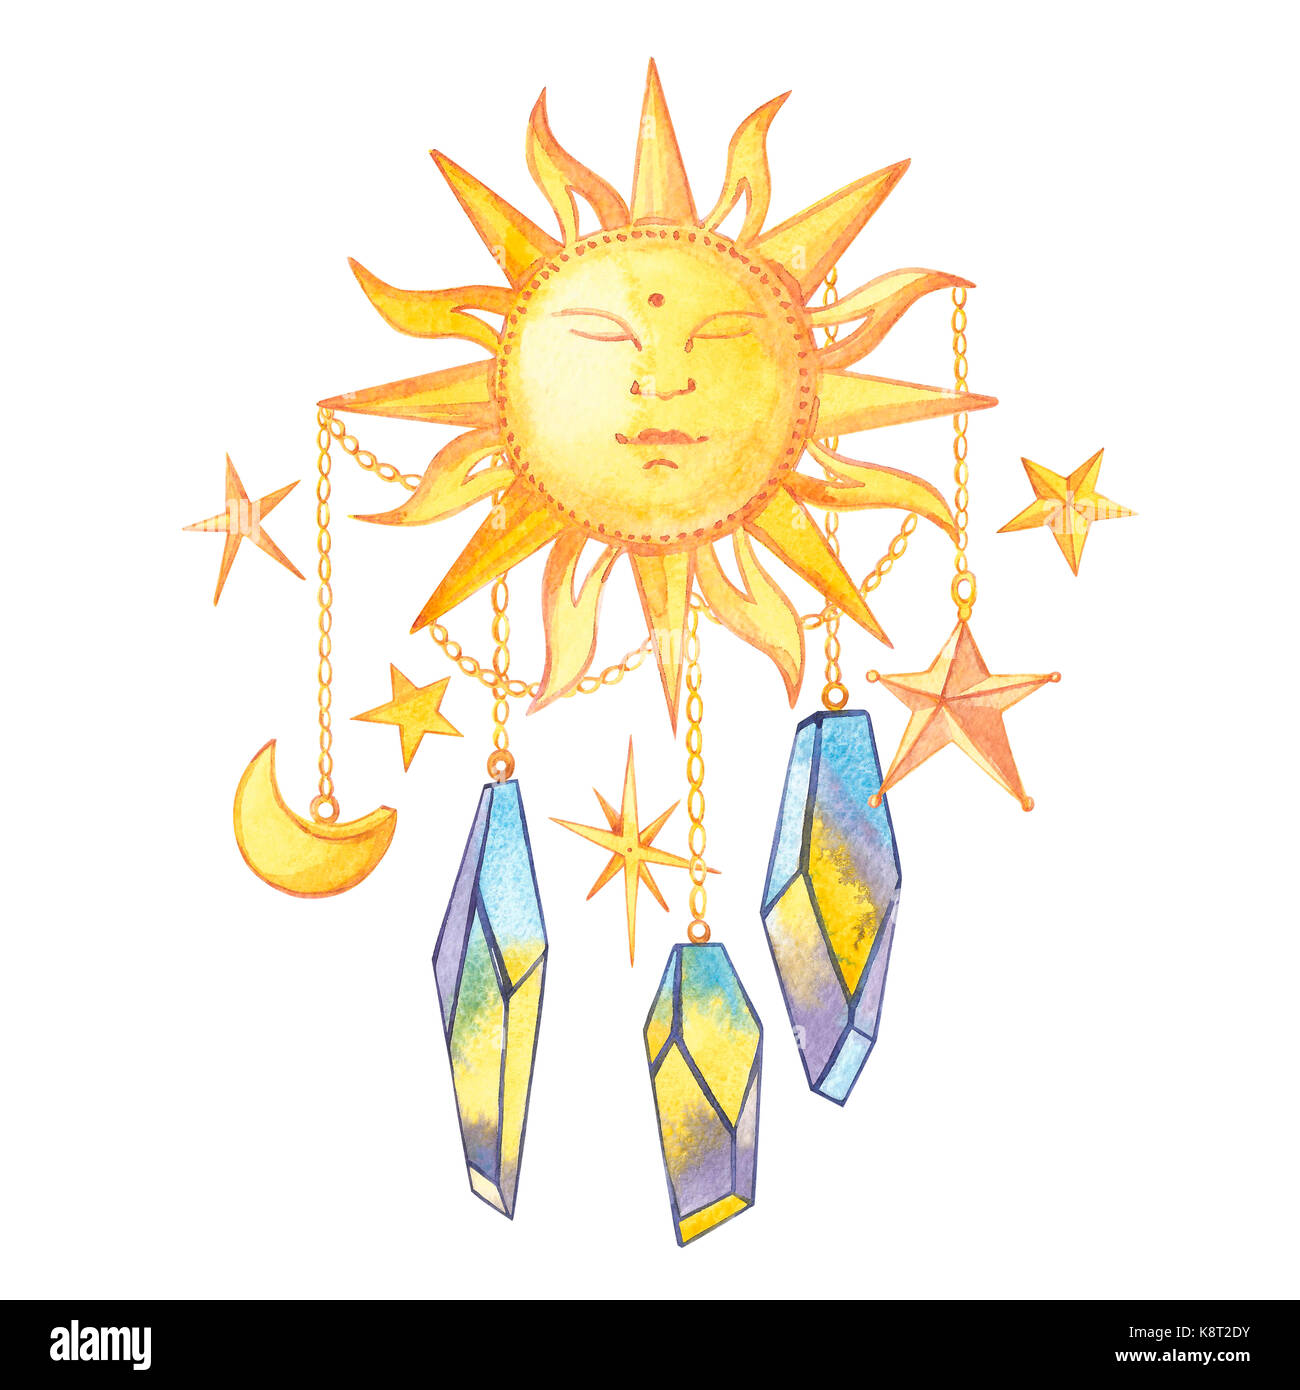 Set of geometric crystals on the chain with the stars and the crescent and sun. Trendy hipster logotypes. Polygonal - Stock Image